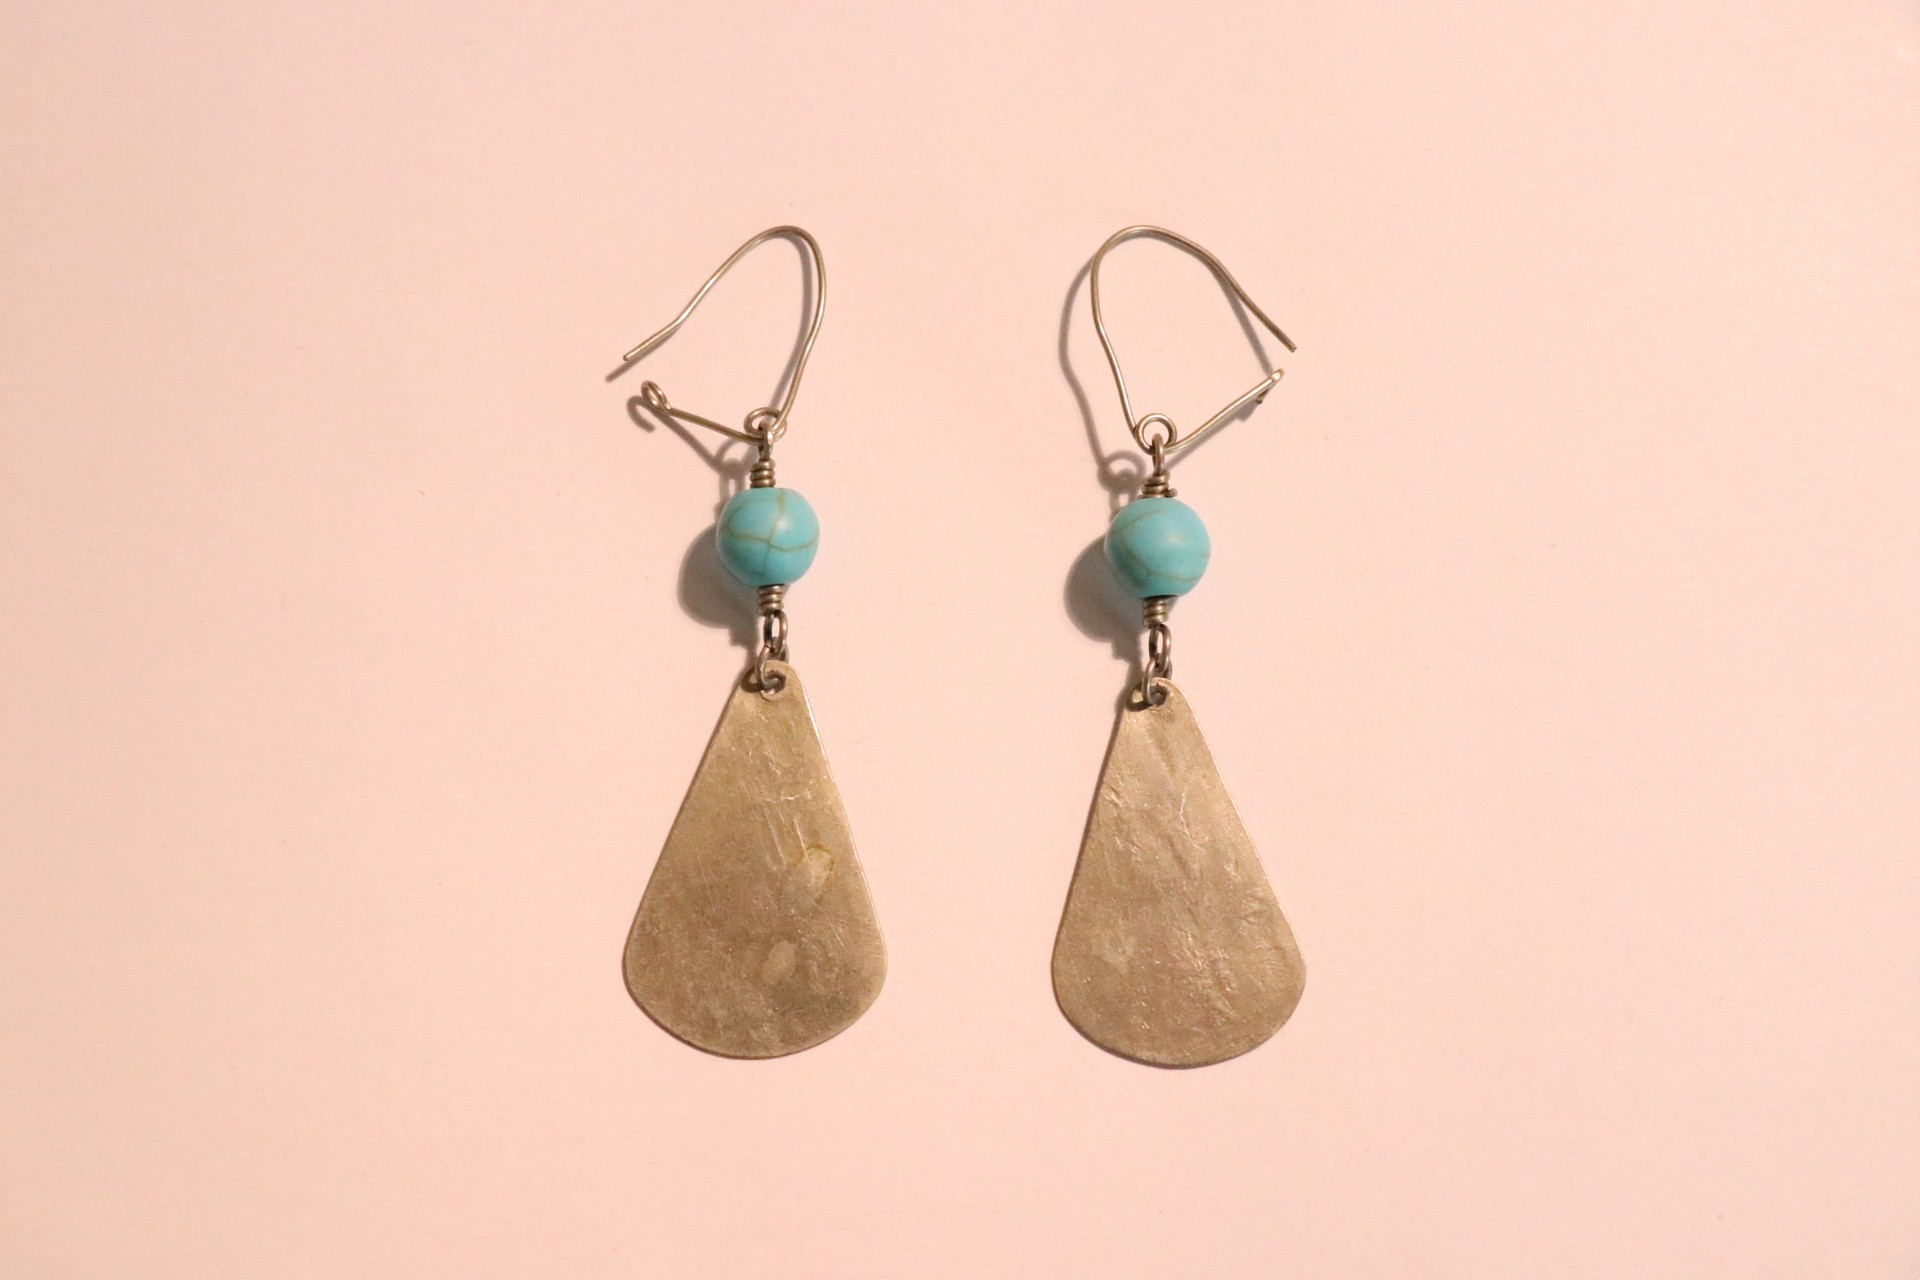 Silver Turquoise Earrings Before Background Removed From Image.